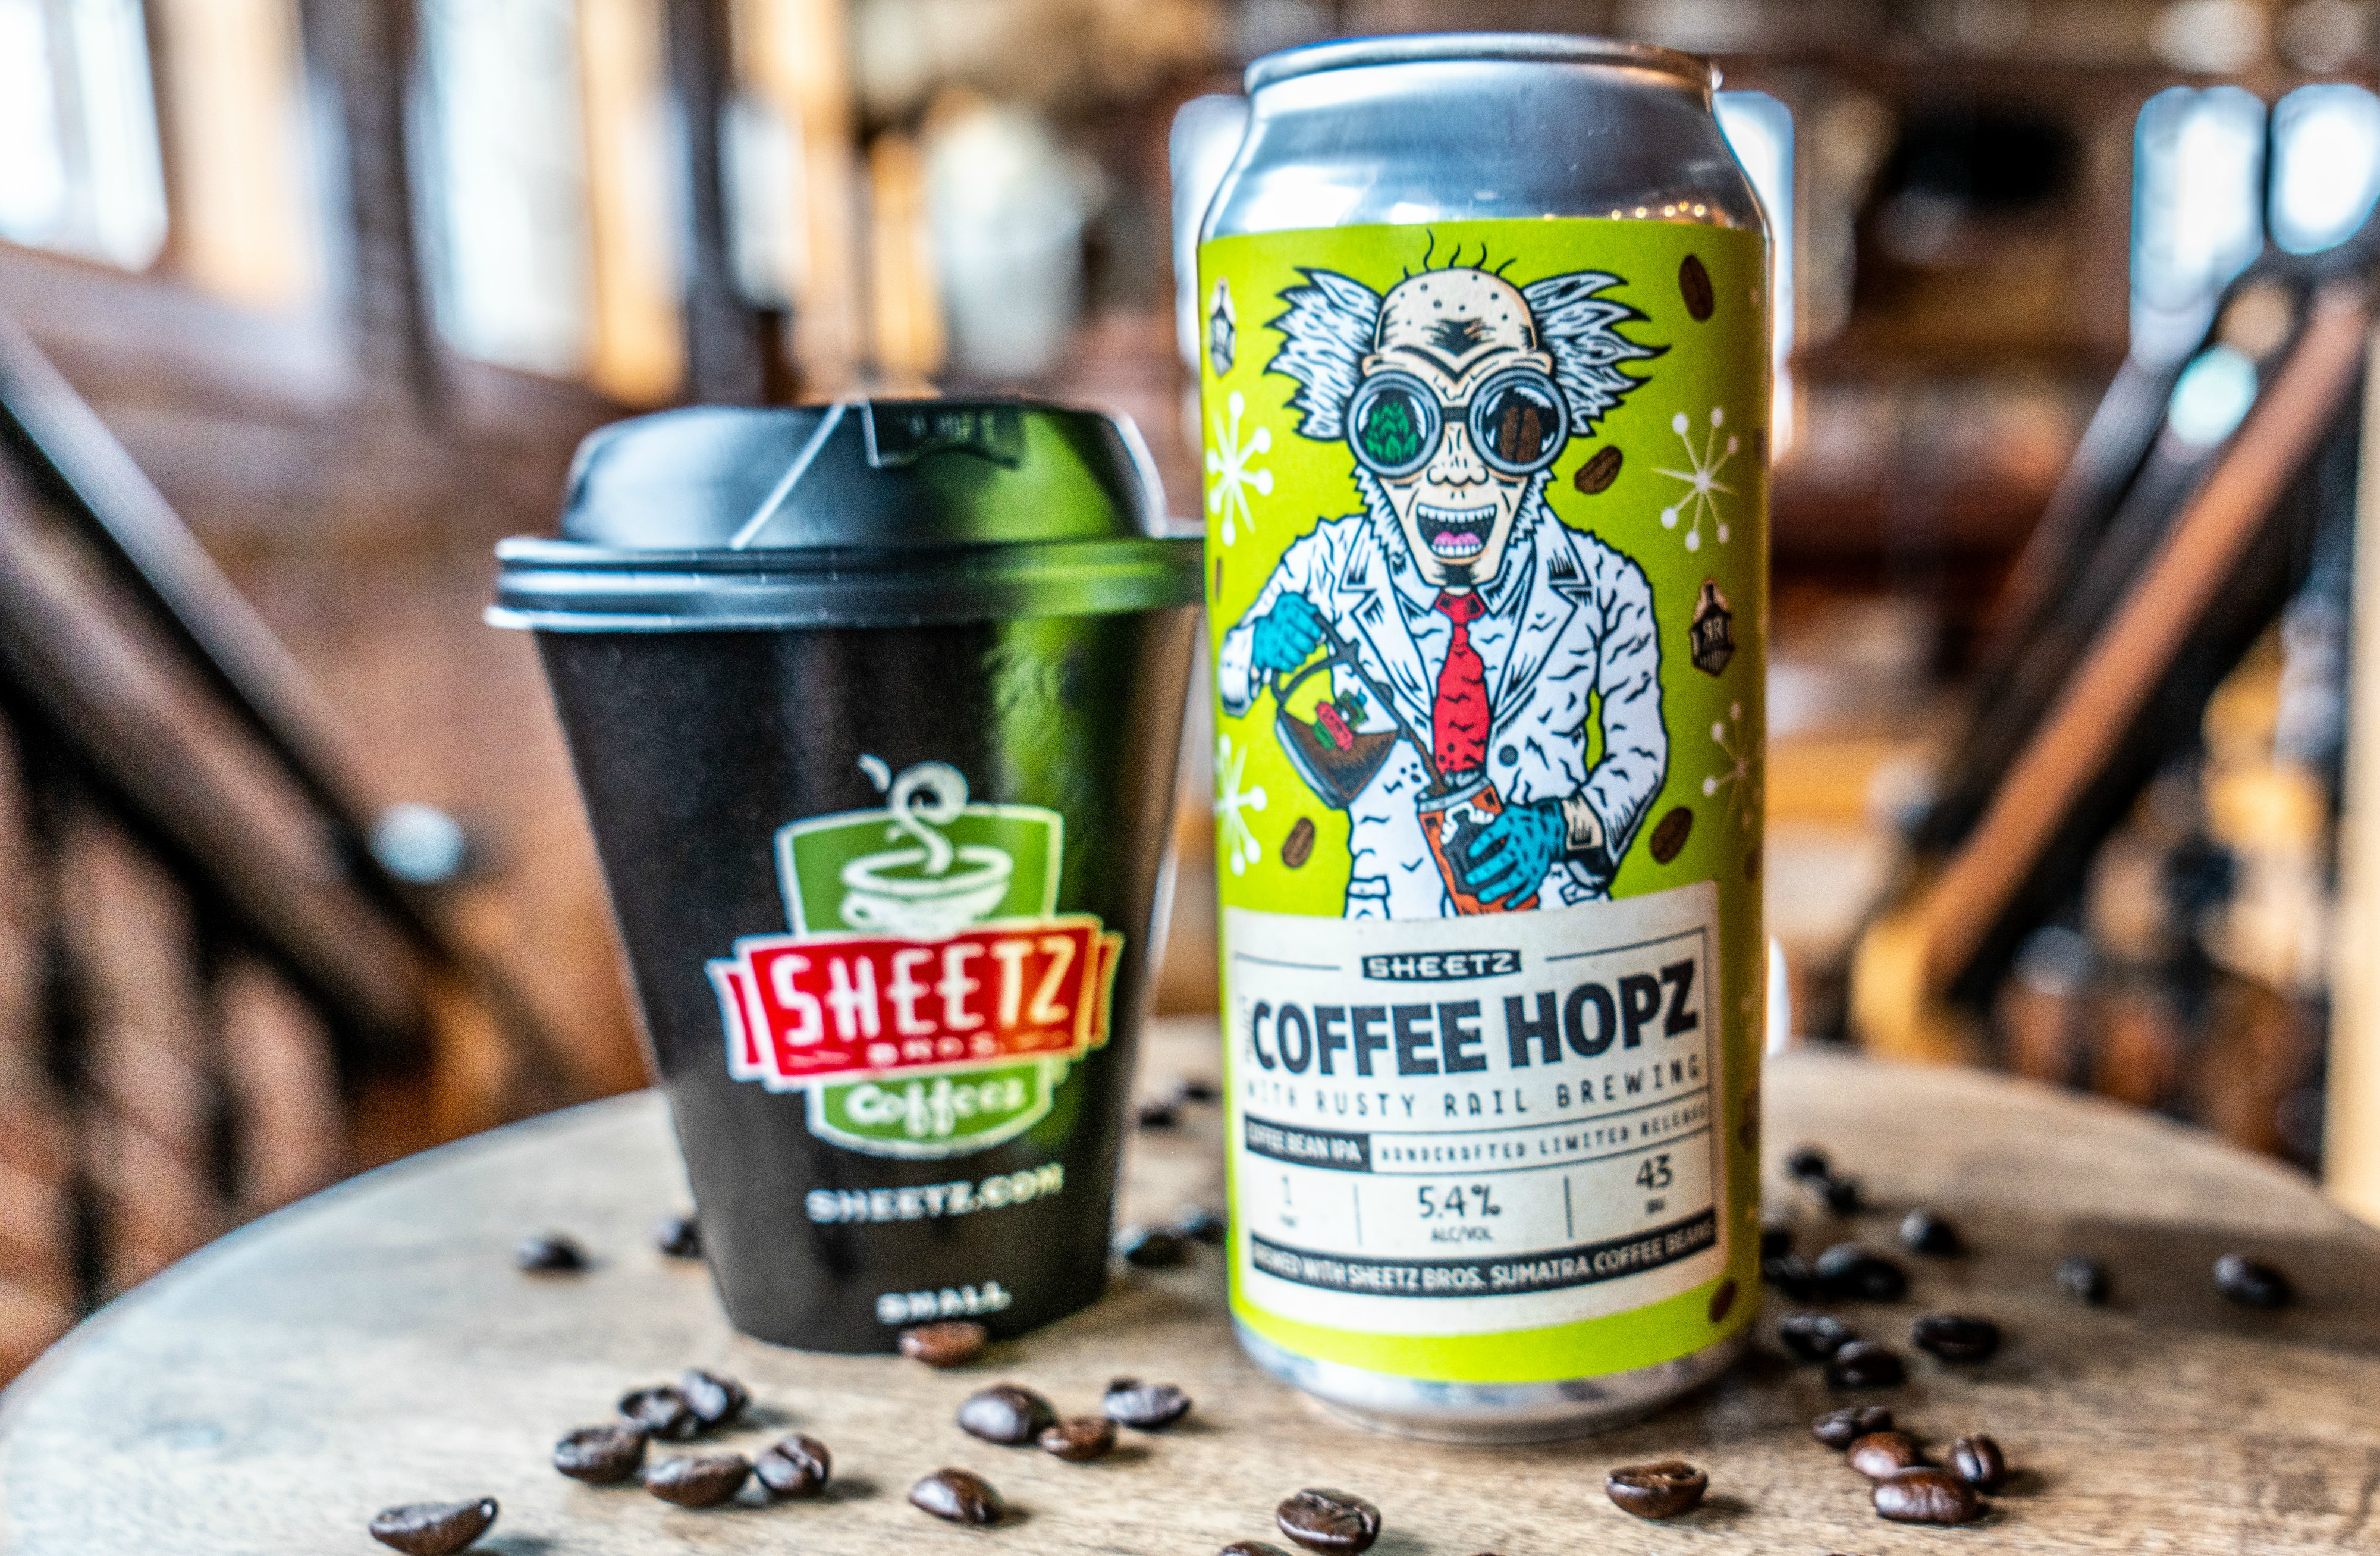 Sheetz Releasing Its First Craft Beer 'Project Coffee Hopz